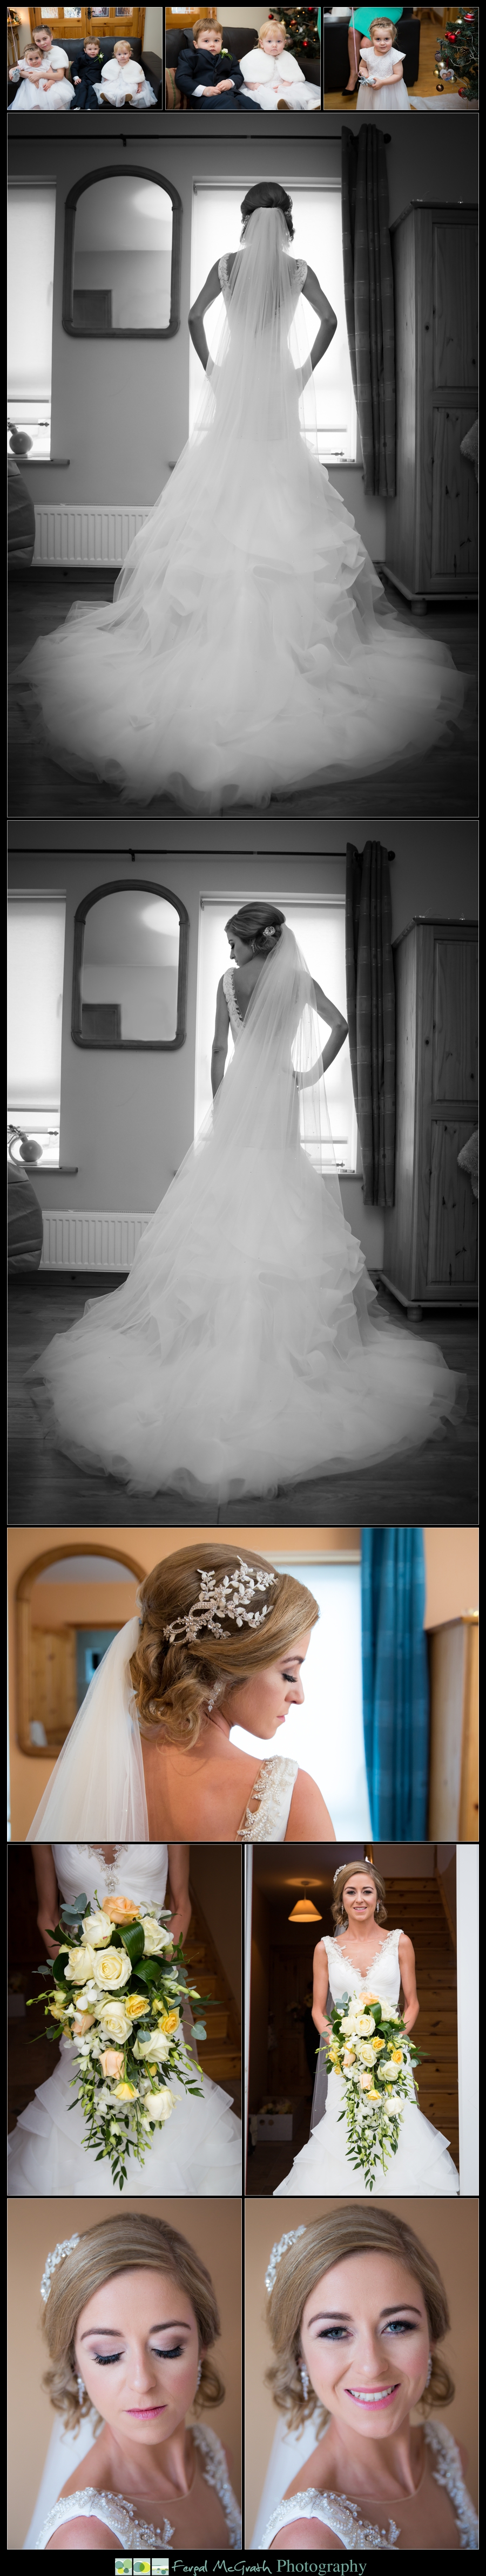 Silver Tassie Hotel Christmas Wedding brides stunning wedding dress photos